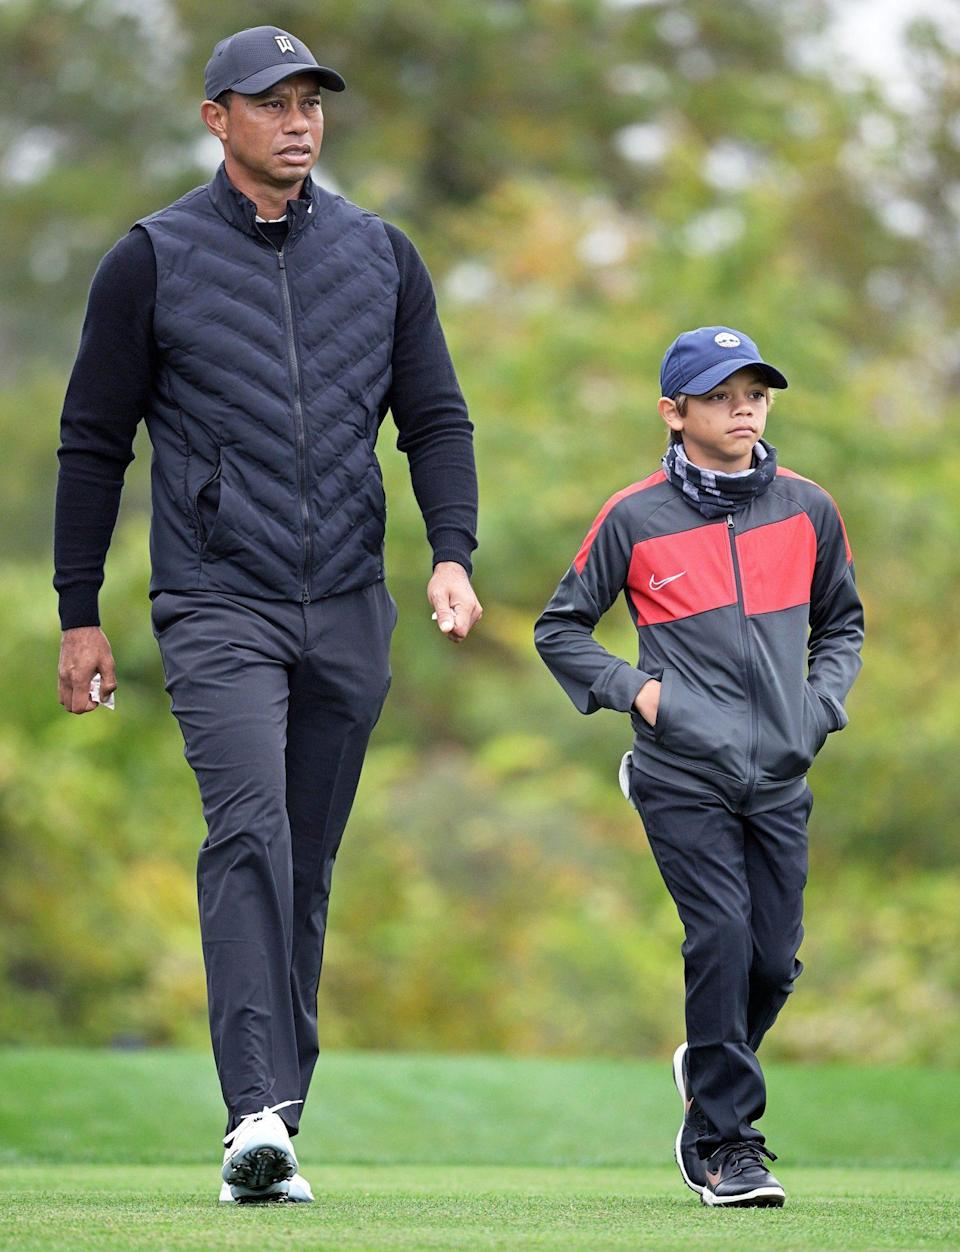 "<p>Tiger Woods and son Charlie hit the links in Orlando on Thursday during a practice round for the Father-Son Challenge golf tournament, which the <a href=""https://people.com/sports/tiger-woods-son-charlie-father-son-caddie-pnc-championship/"" rel=""nofollow noopener"" target=""_blank"" data-ylk=""slk:two will participate in"" class=""link rapid-noclick-resp"">two will participate in</a> (with father-son caddies!) this weekend. </p>"